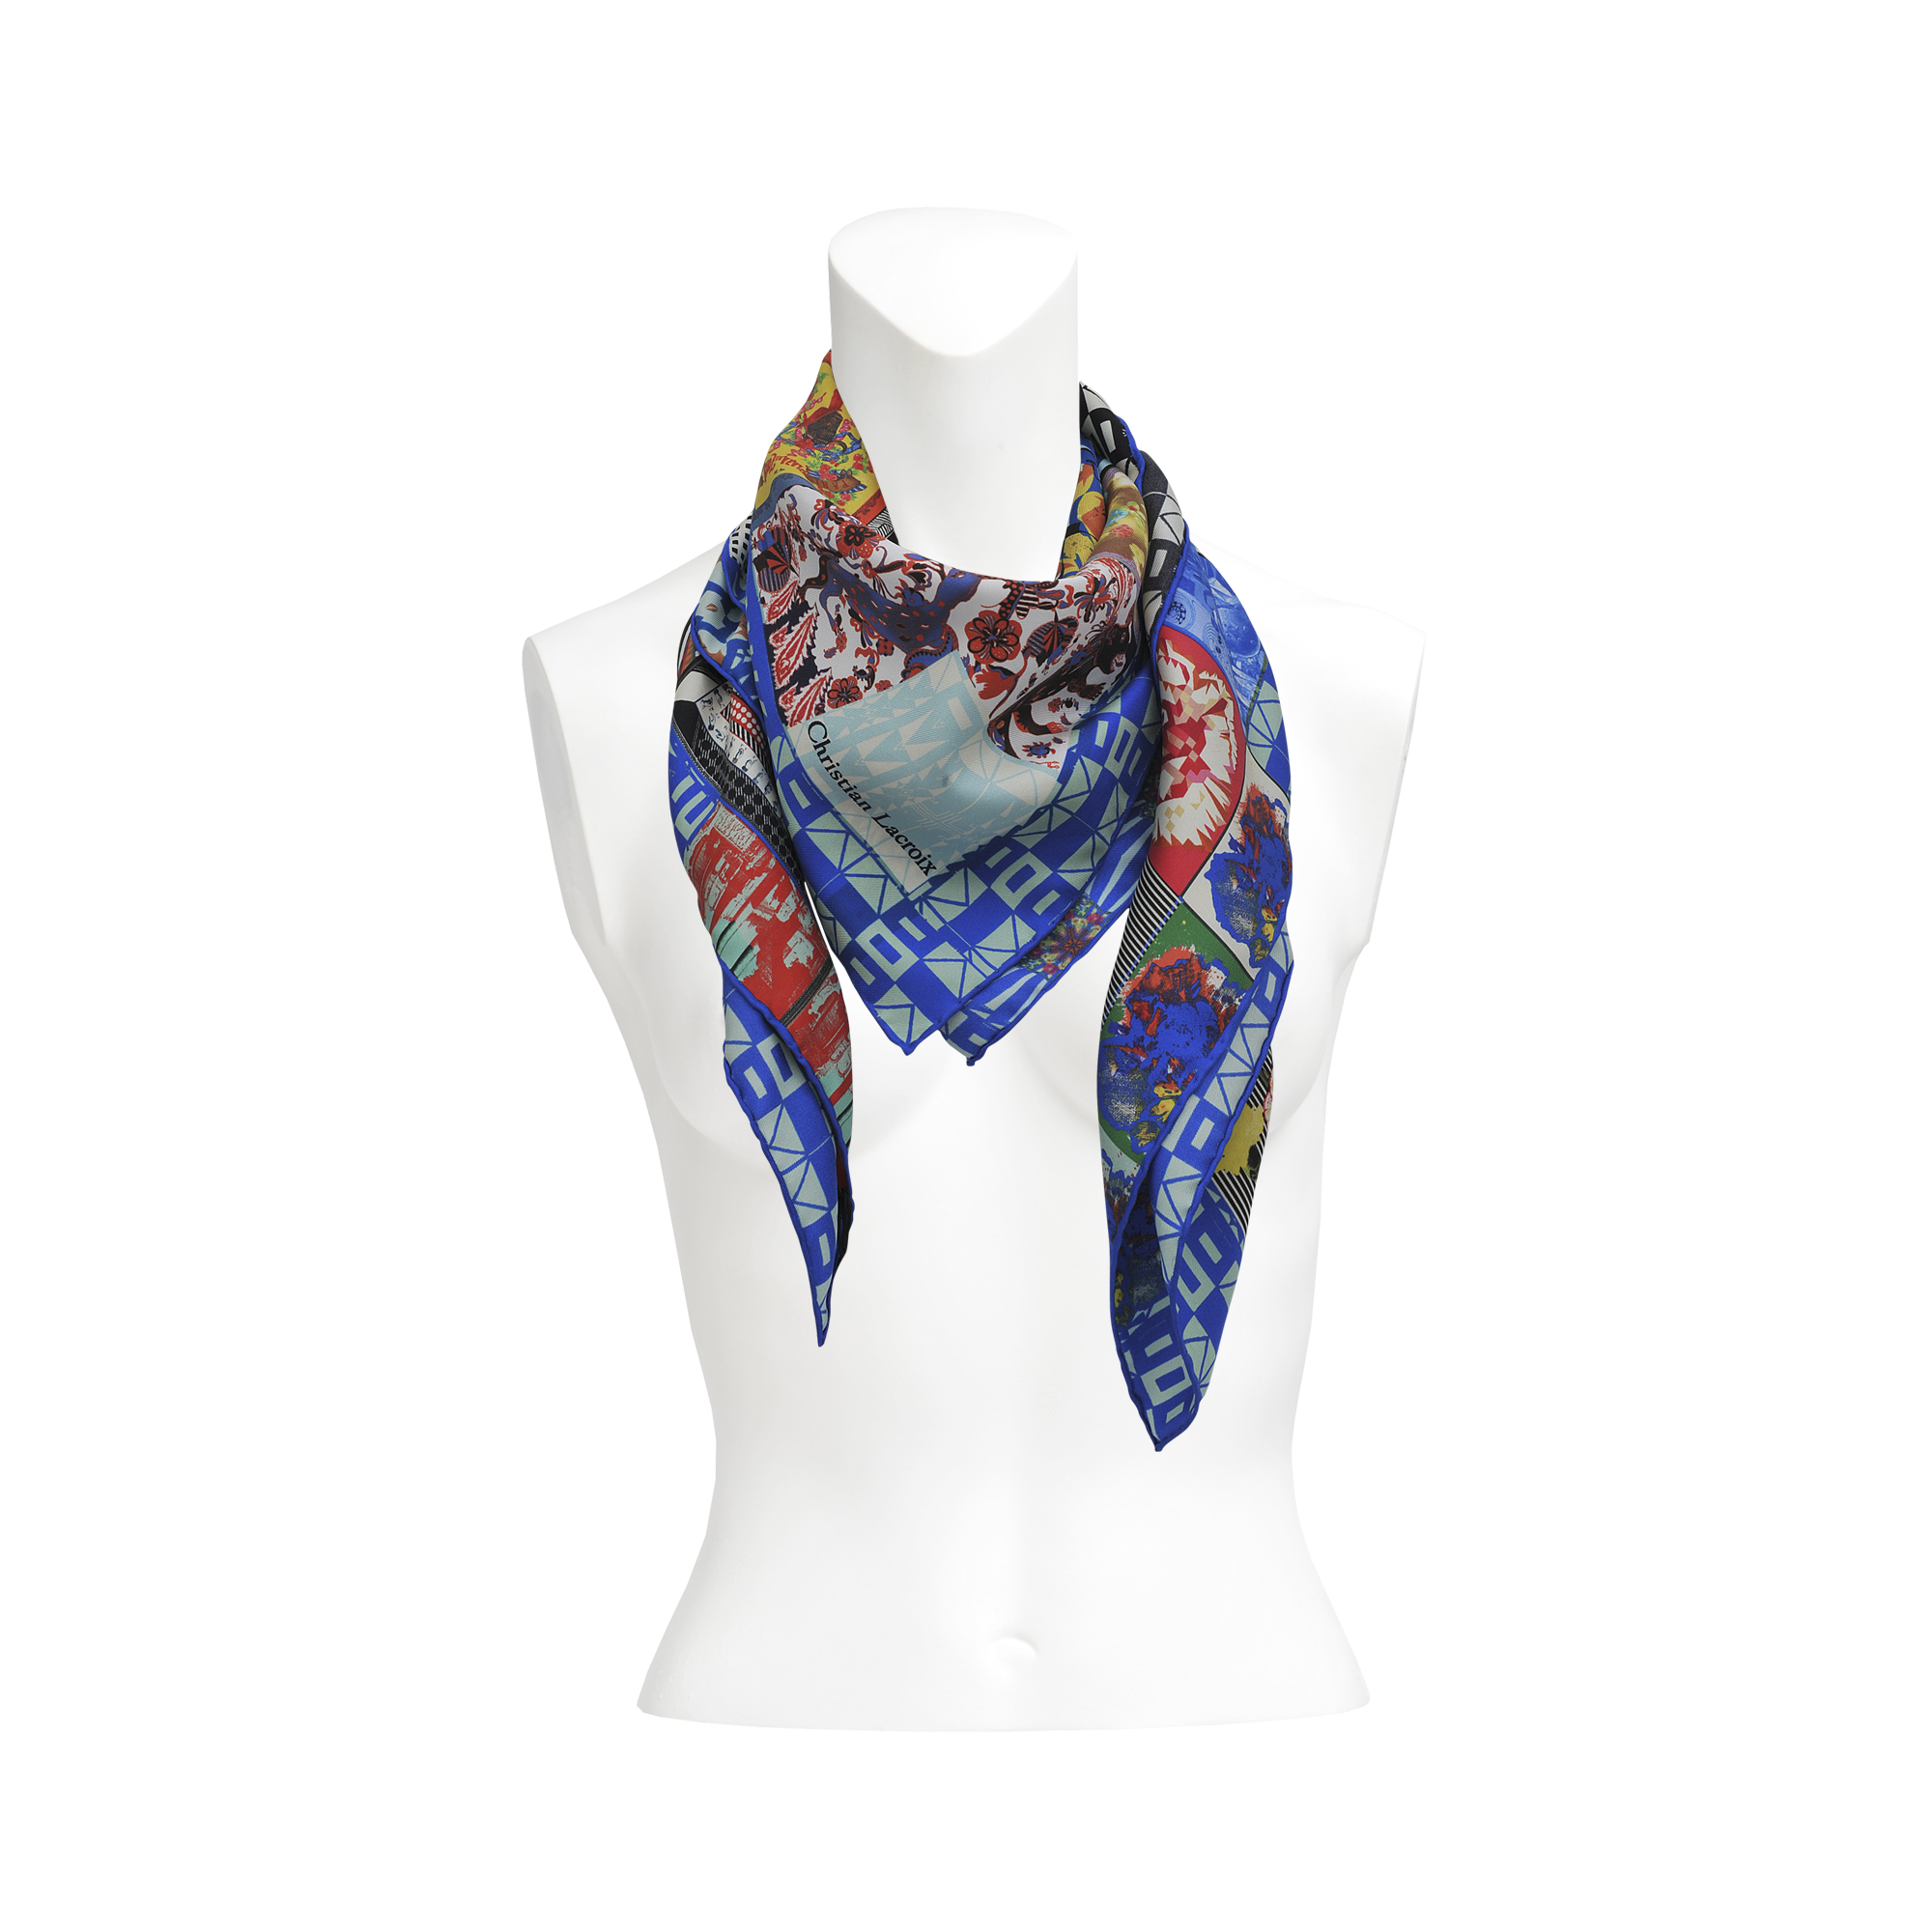 christian lacroix patch 90x90 silk scarf in multicolor